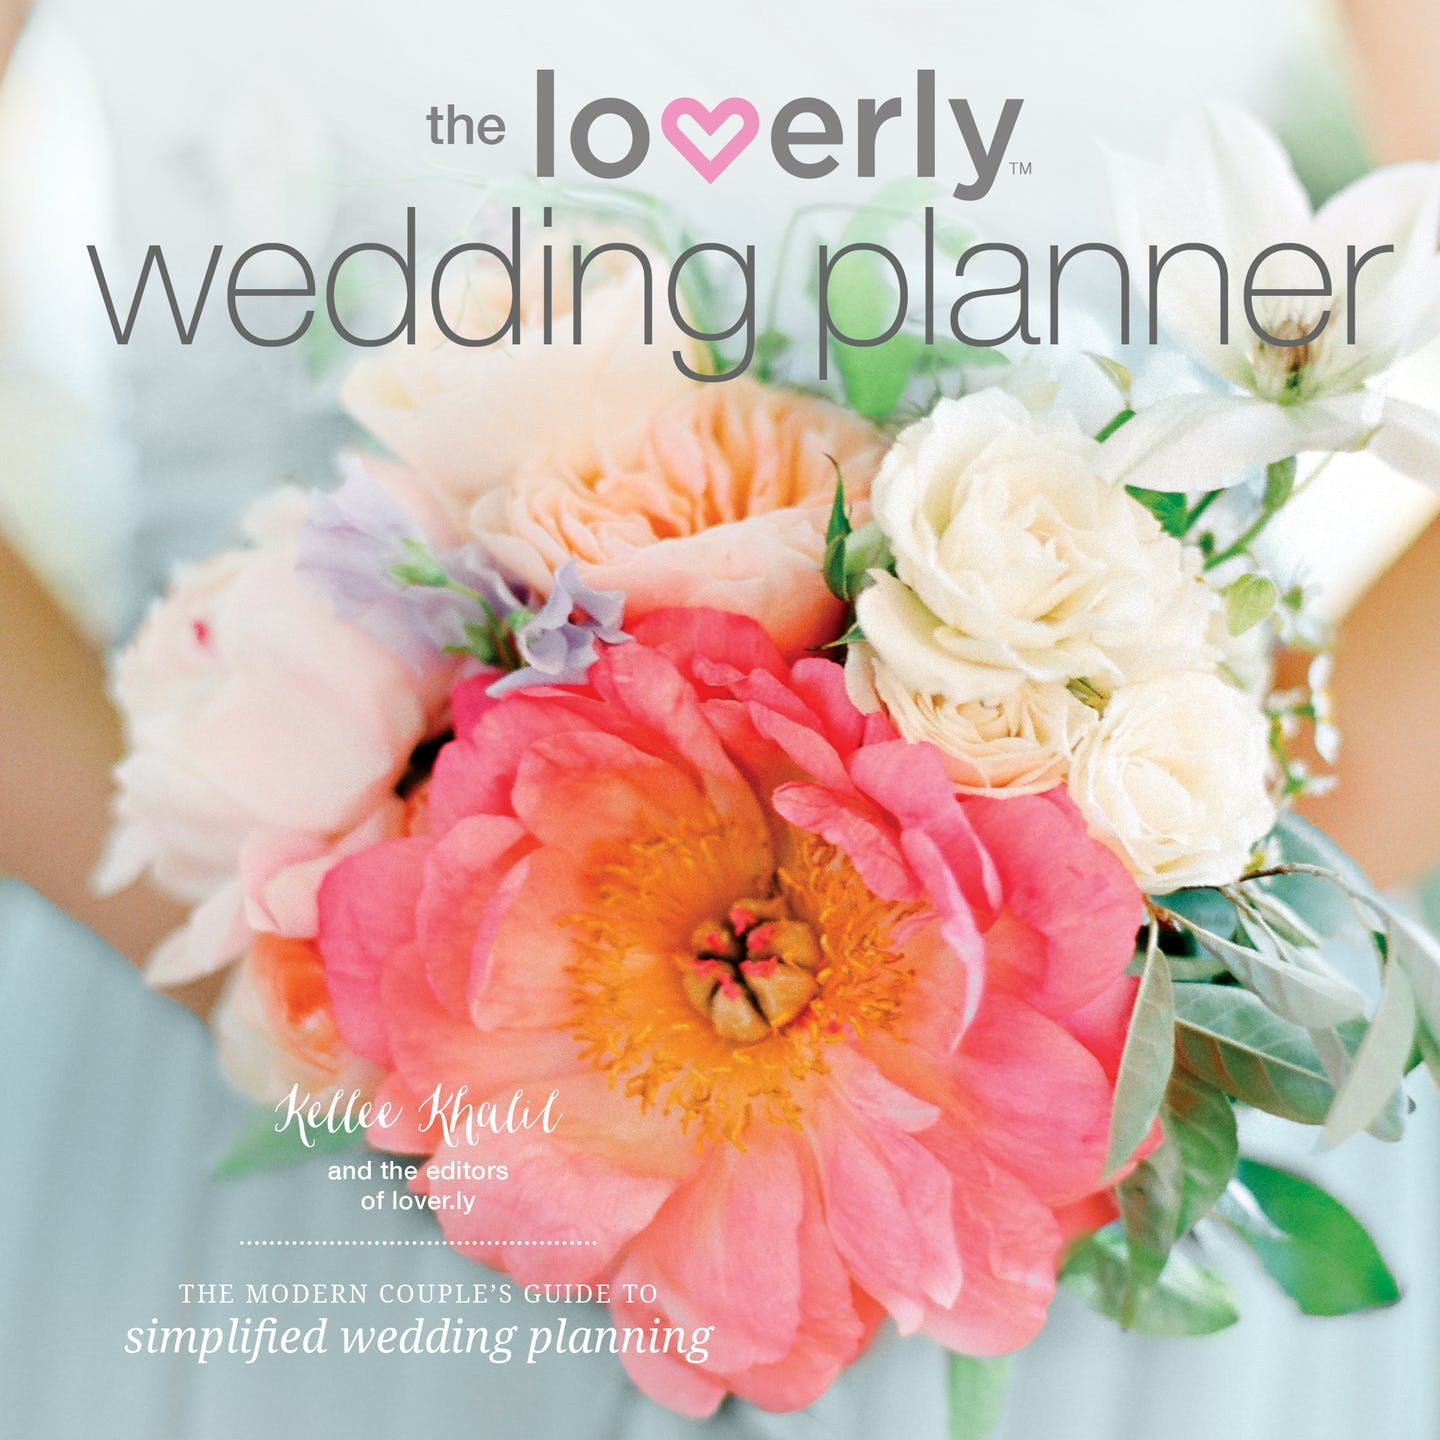 Loverly-Wedding-Planner_Book-Cover-Image